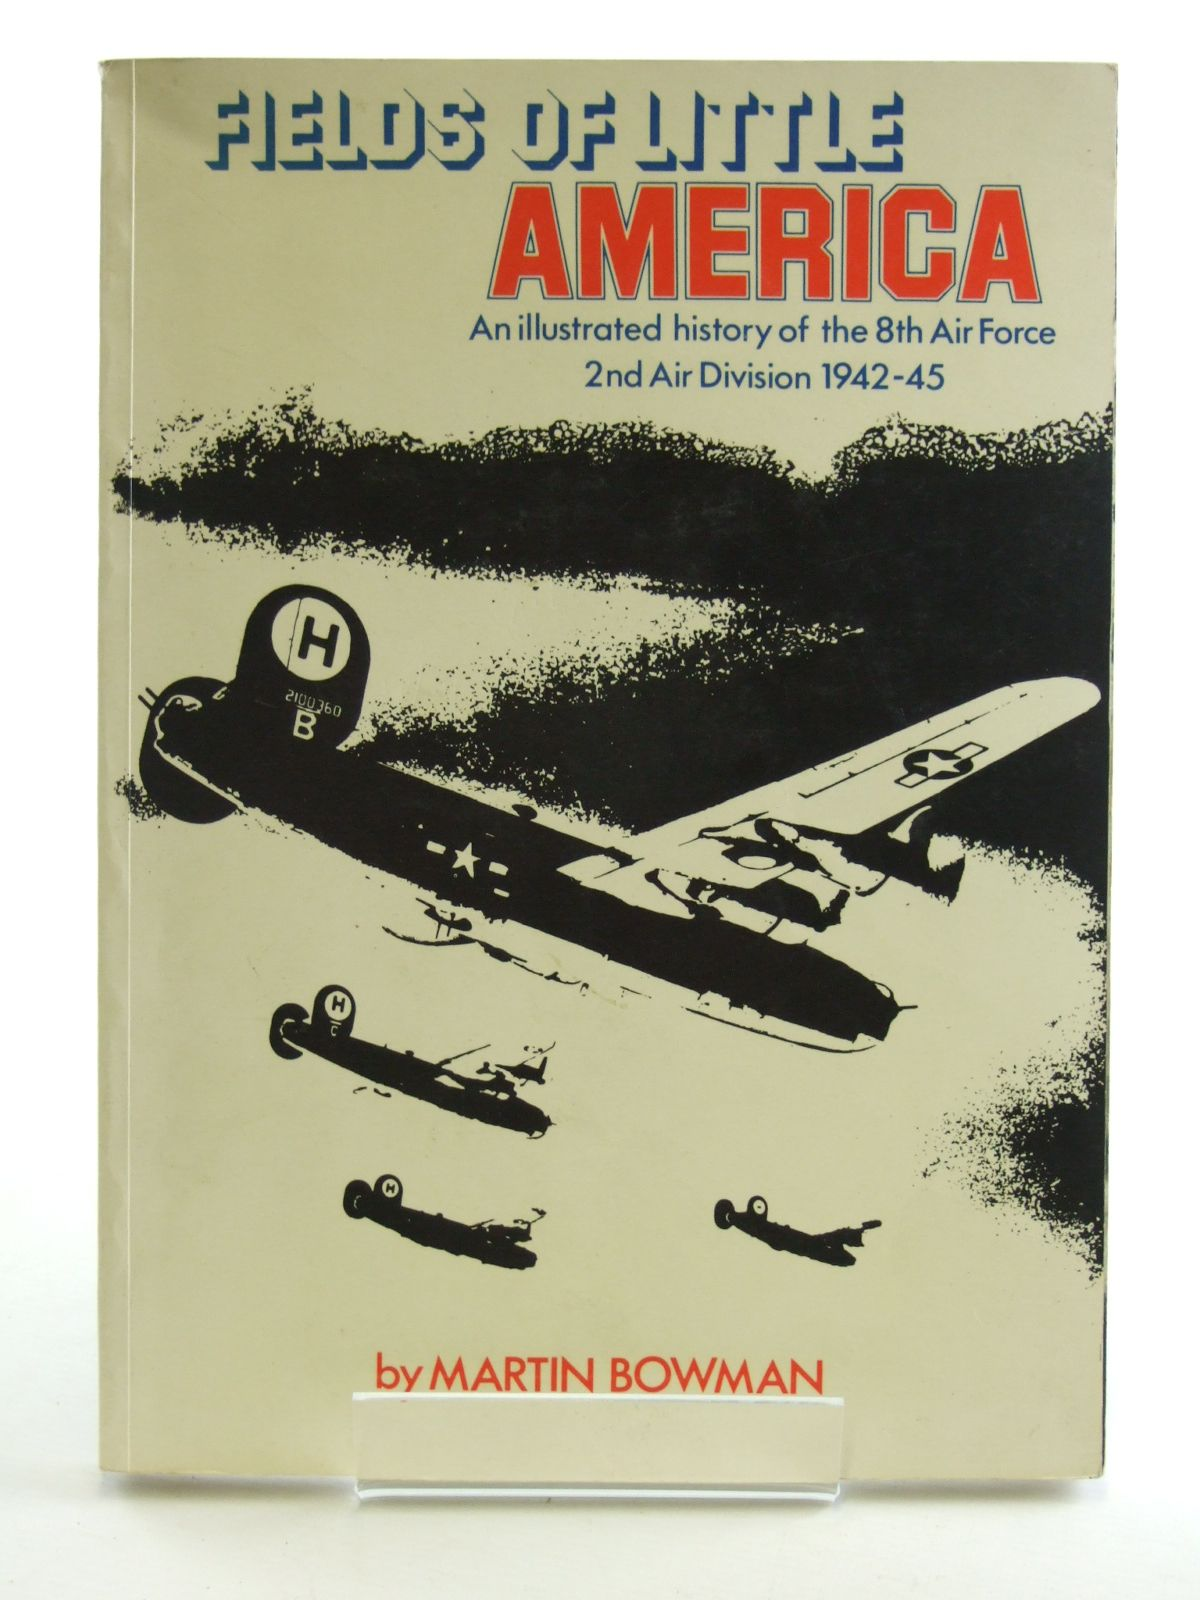 Photo of FIELDS OF LITTLE AMERICA AN ILLUSTRATED HISTORY OF THE 8TH AIR FORCE 2ND AIR DIVISION 1942-45 written by Bowman, Martin published by Wensum Books (STOCK CODE: 1603600)  for sale by Stella & Rose's Books